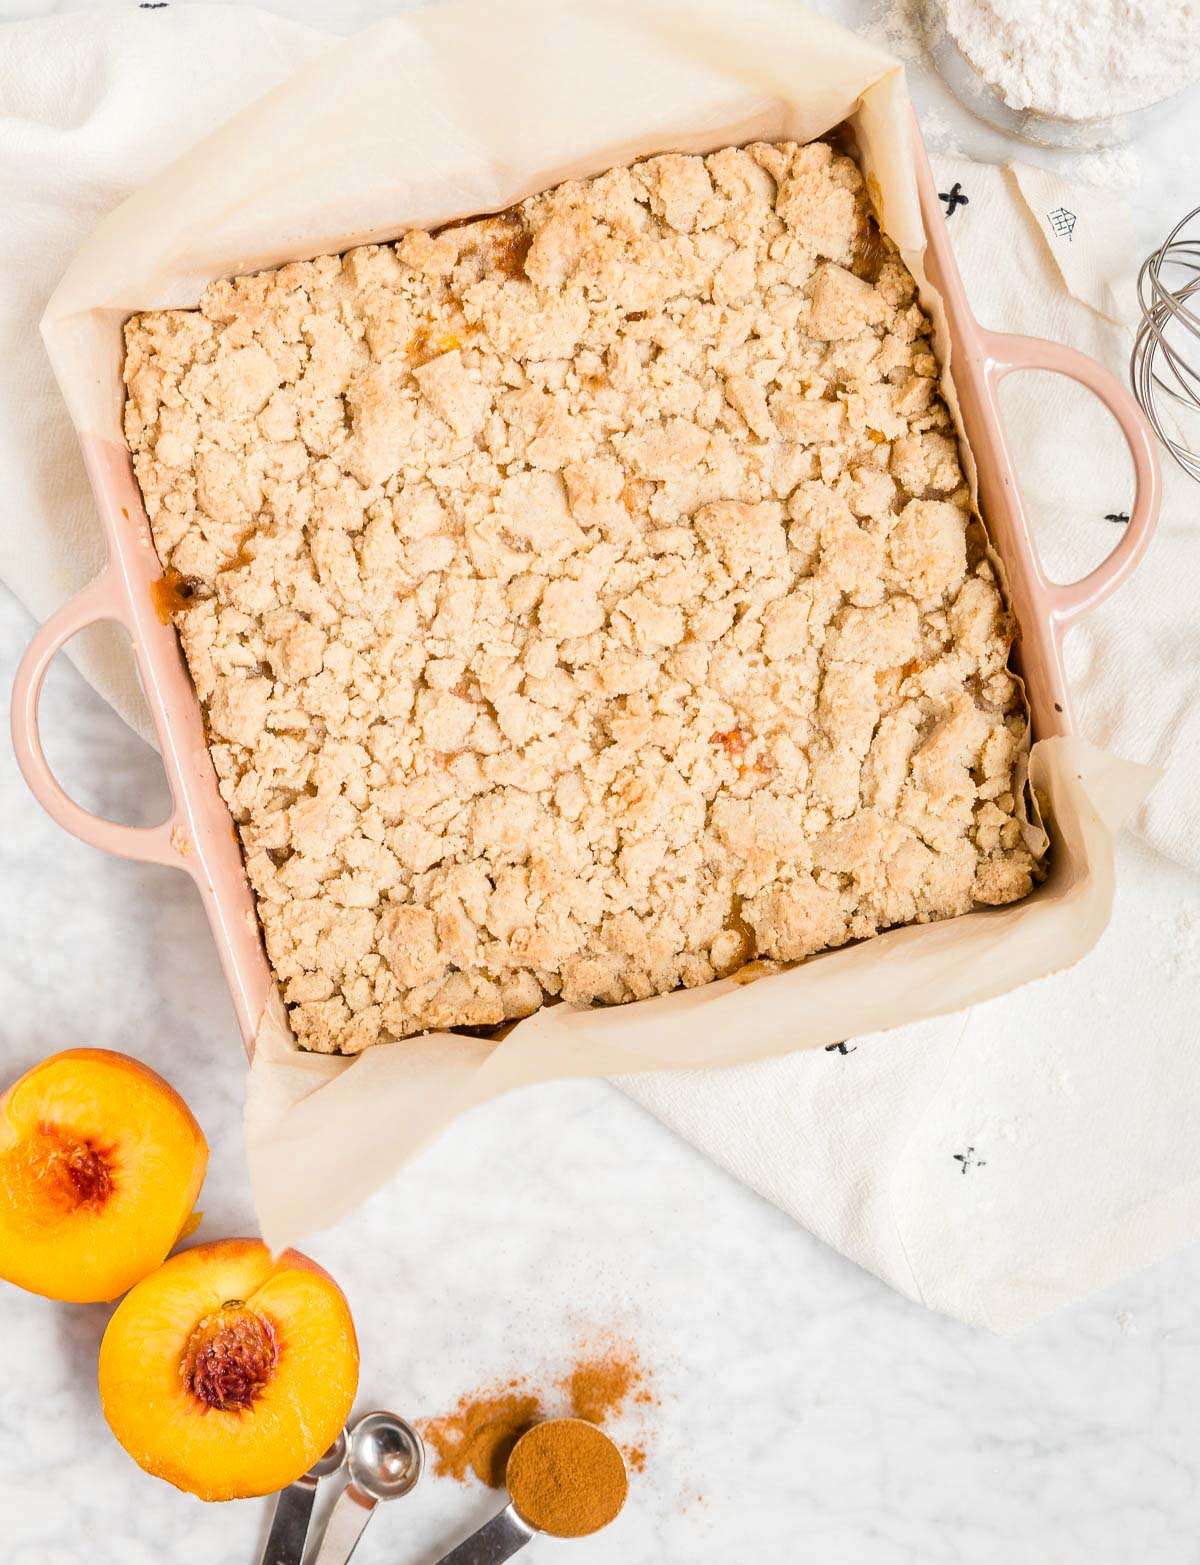 An aerial view of a baking dish with gluten-free vegan peach crumb bars in it and fresh peaches next to it.